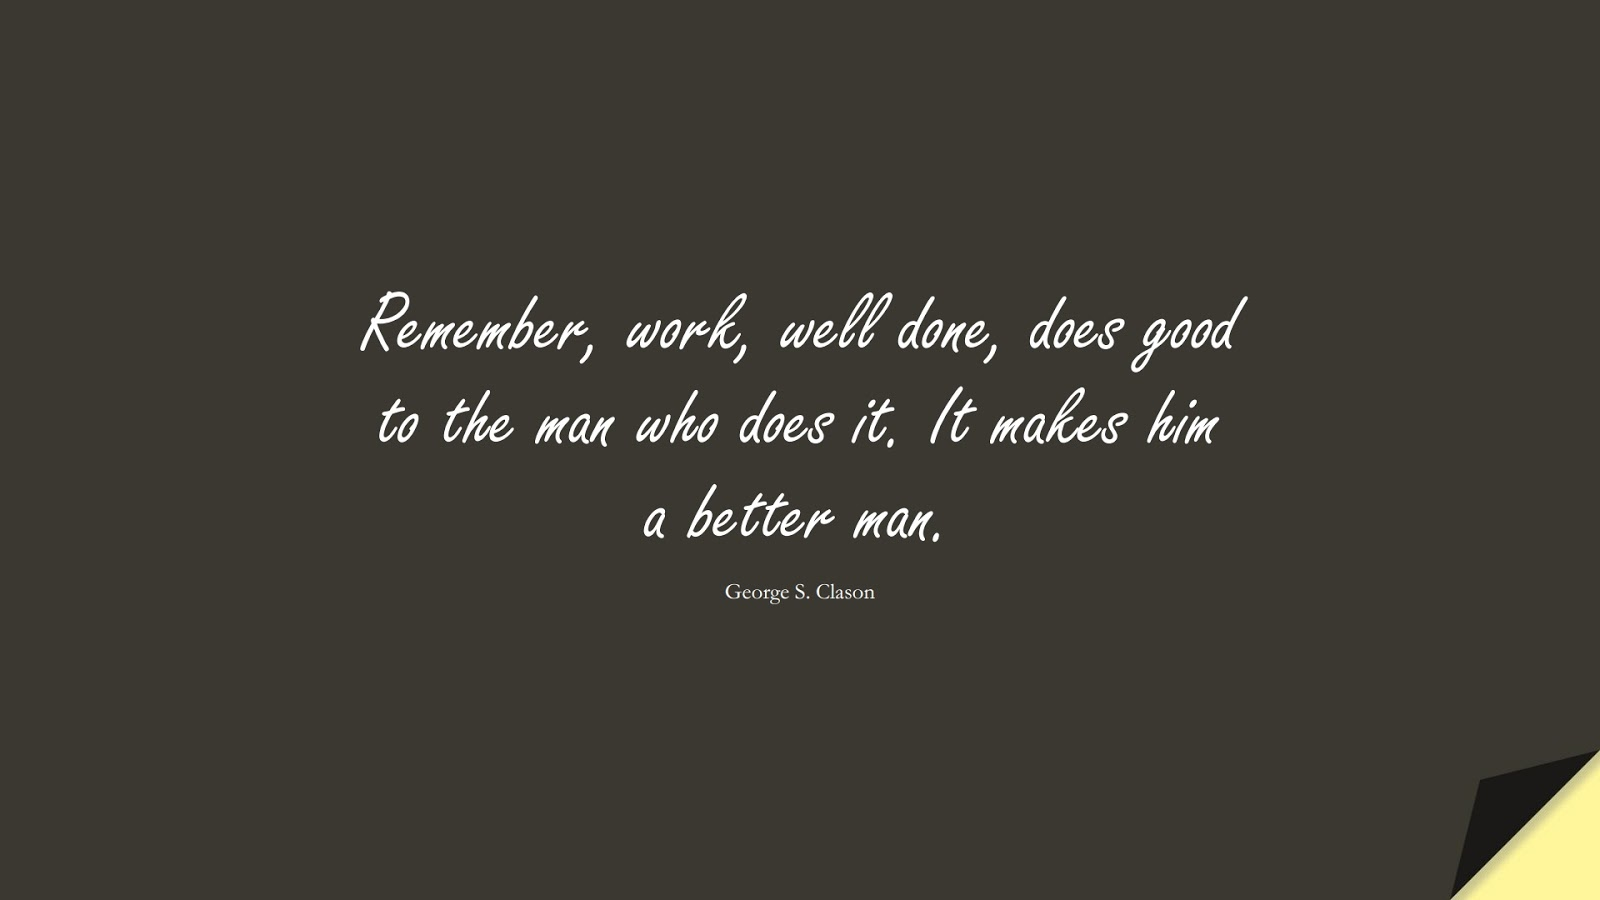 Remember, work, well done, does good to the man who does it. It makes him a better man. (George S. Clason);  #PositiveQuotes